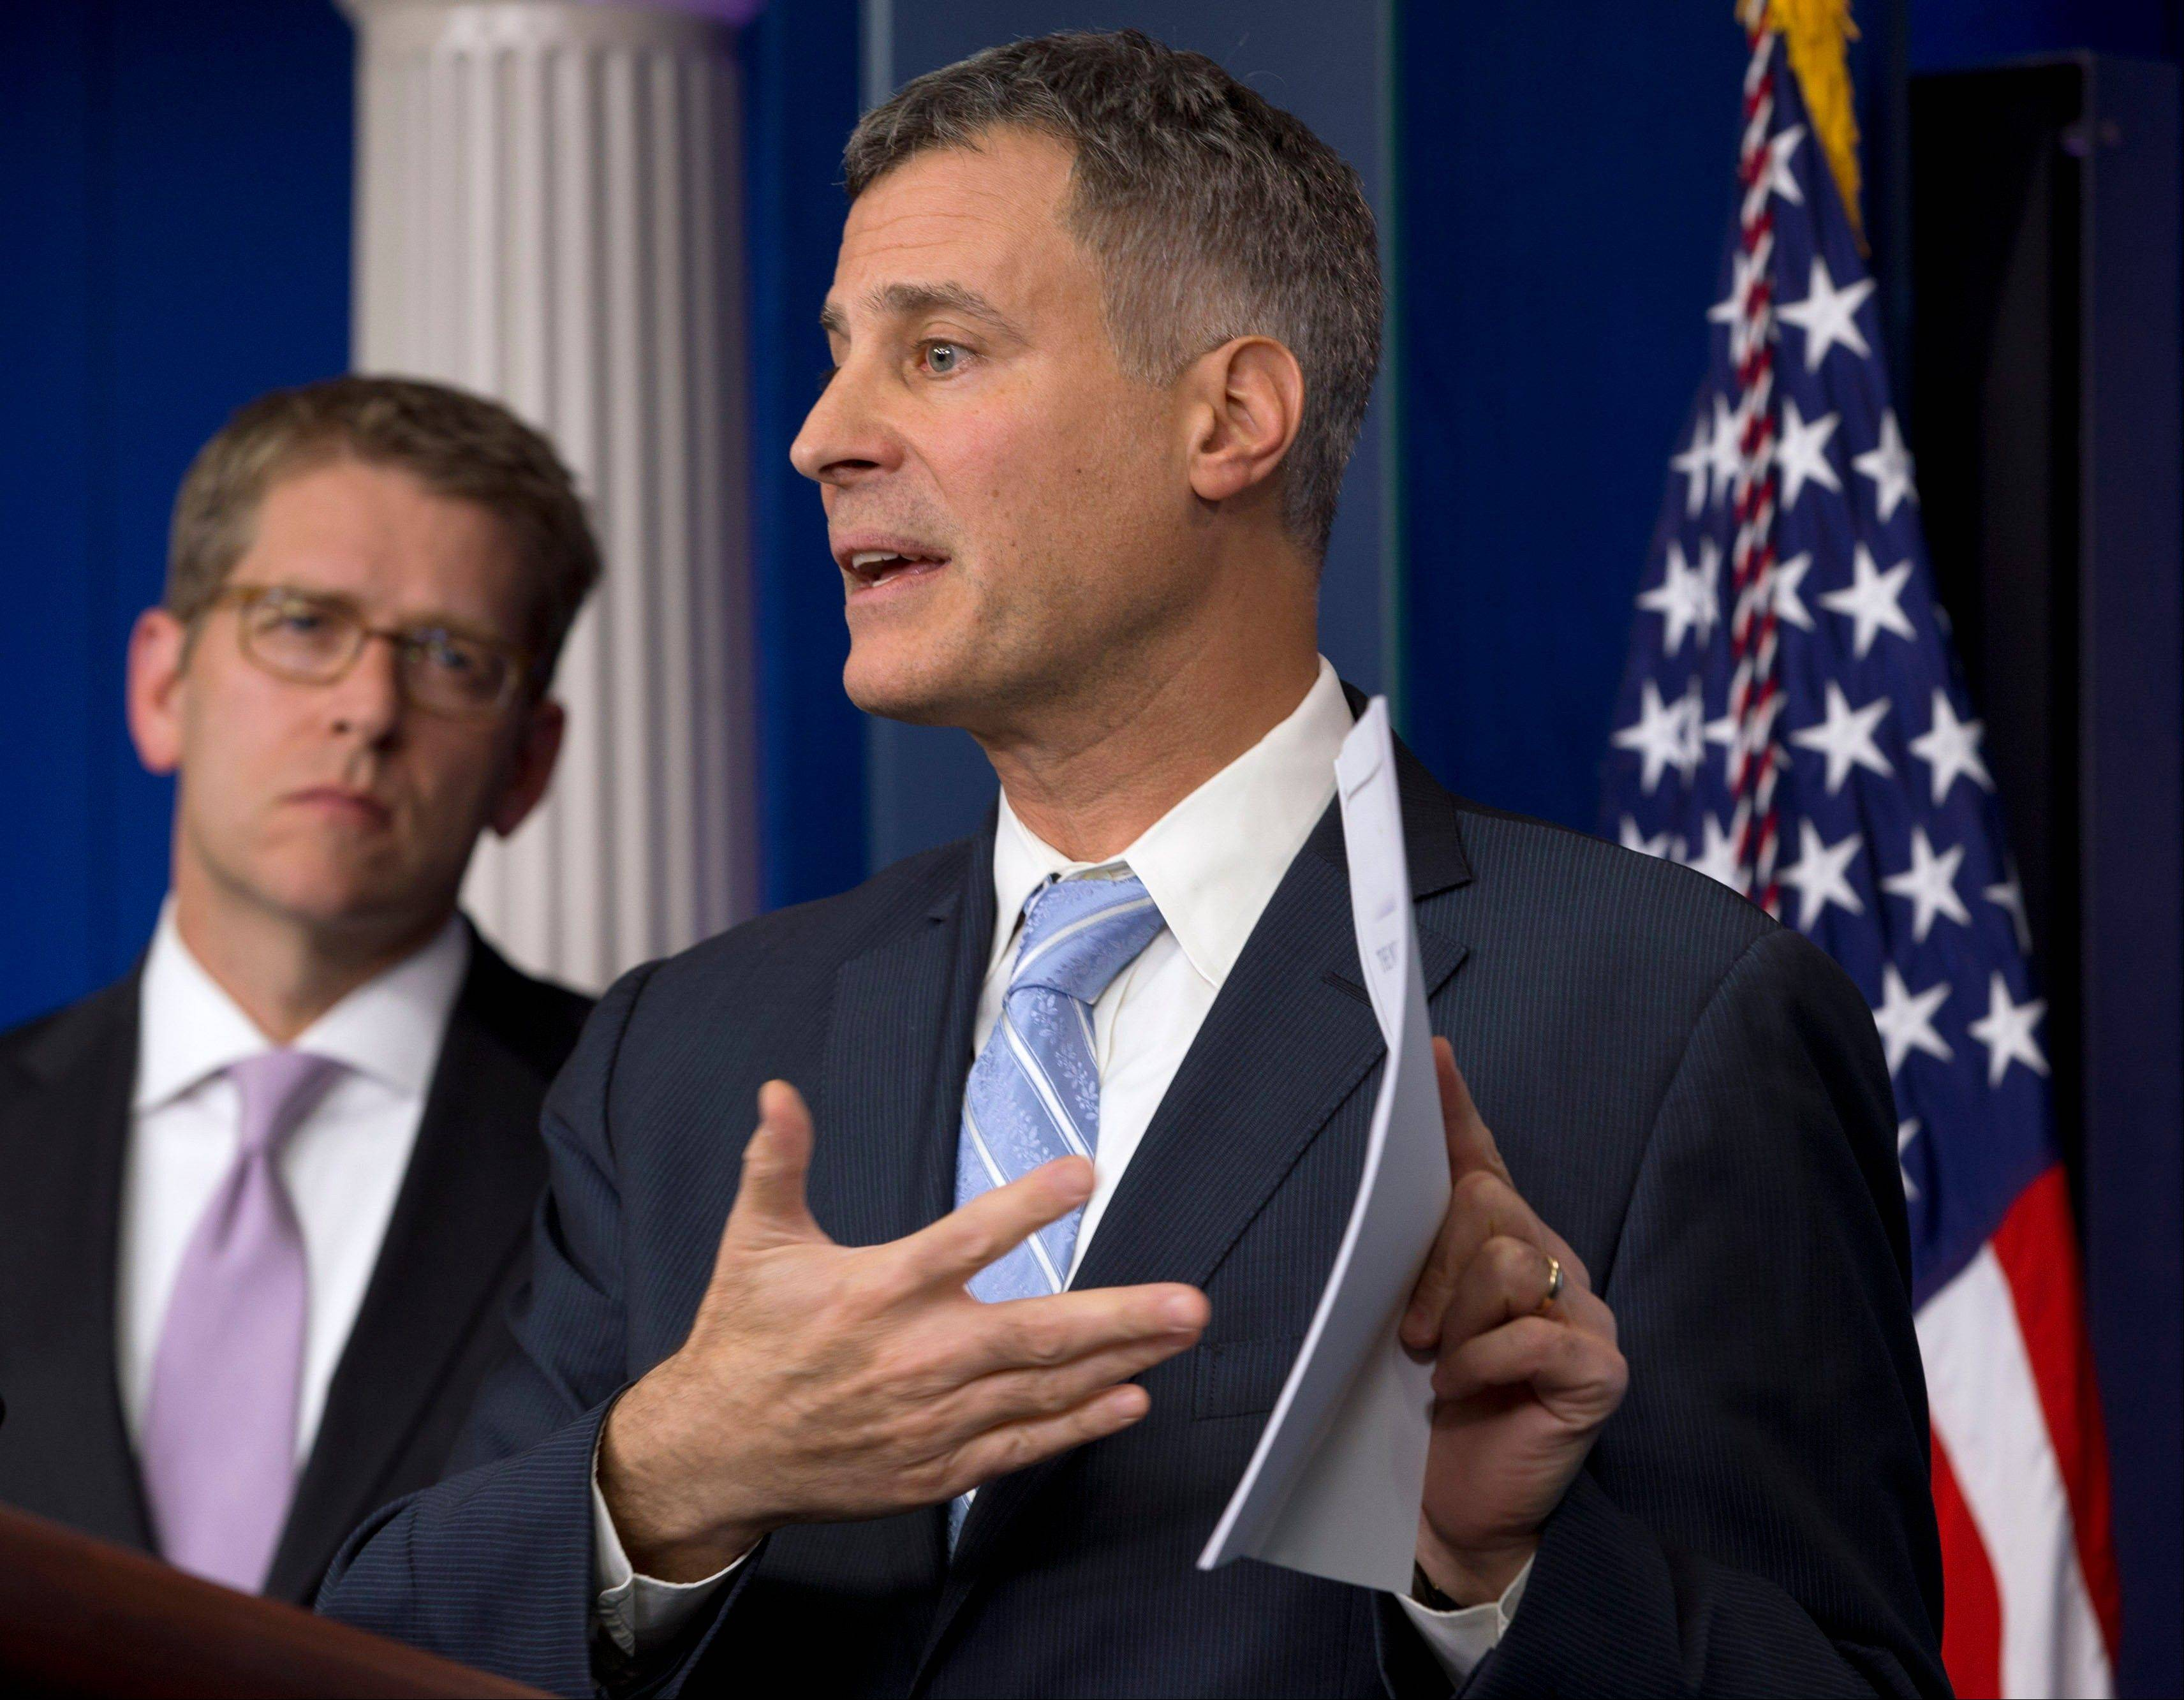 Alan Krueger, Chairman of the White House Council of Economic Advisers, speaks to the media last November about middle class tax cuts and spending during a White House news briefing in Washington.